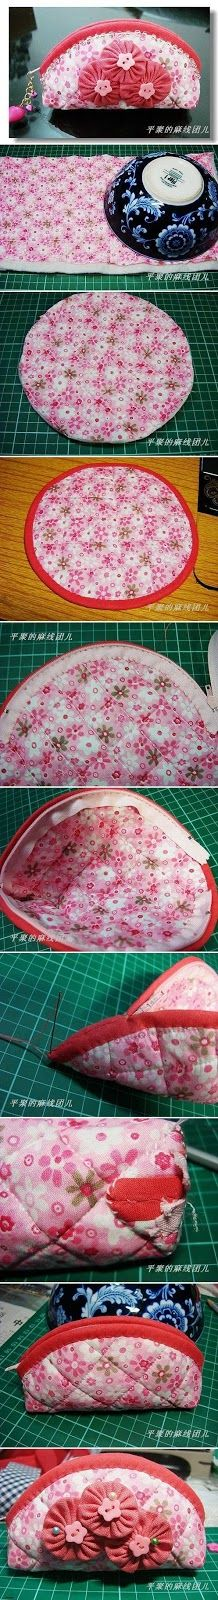 Bolsinha quiltada simples passo a passo - Sew a Simple Pre-Quilted Cosmetic Bag